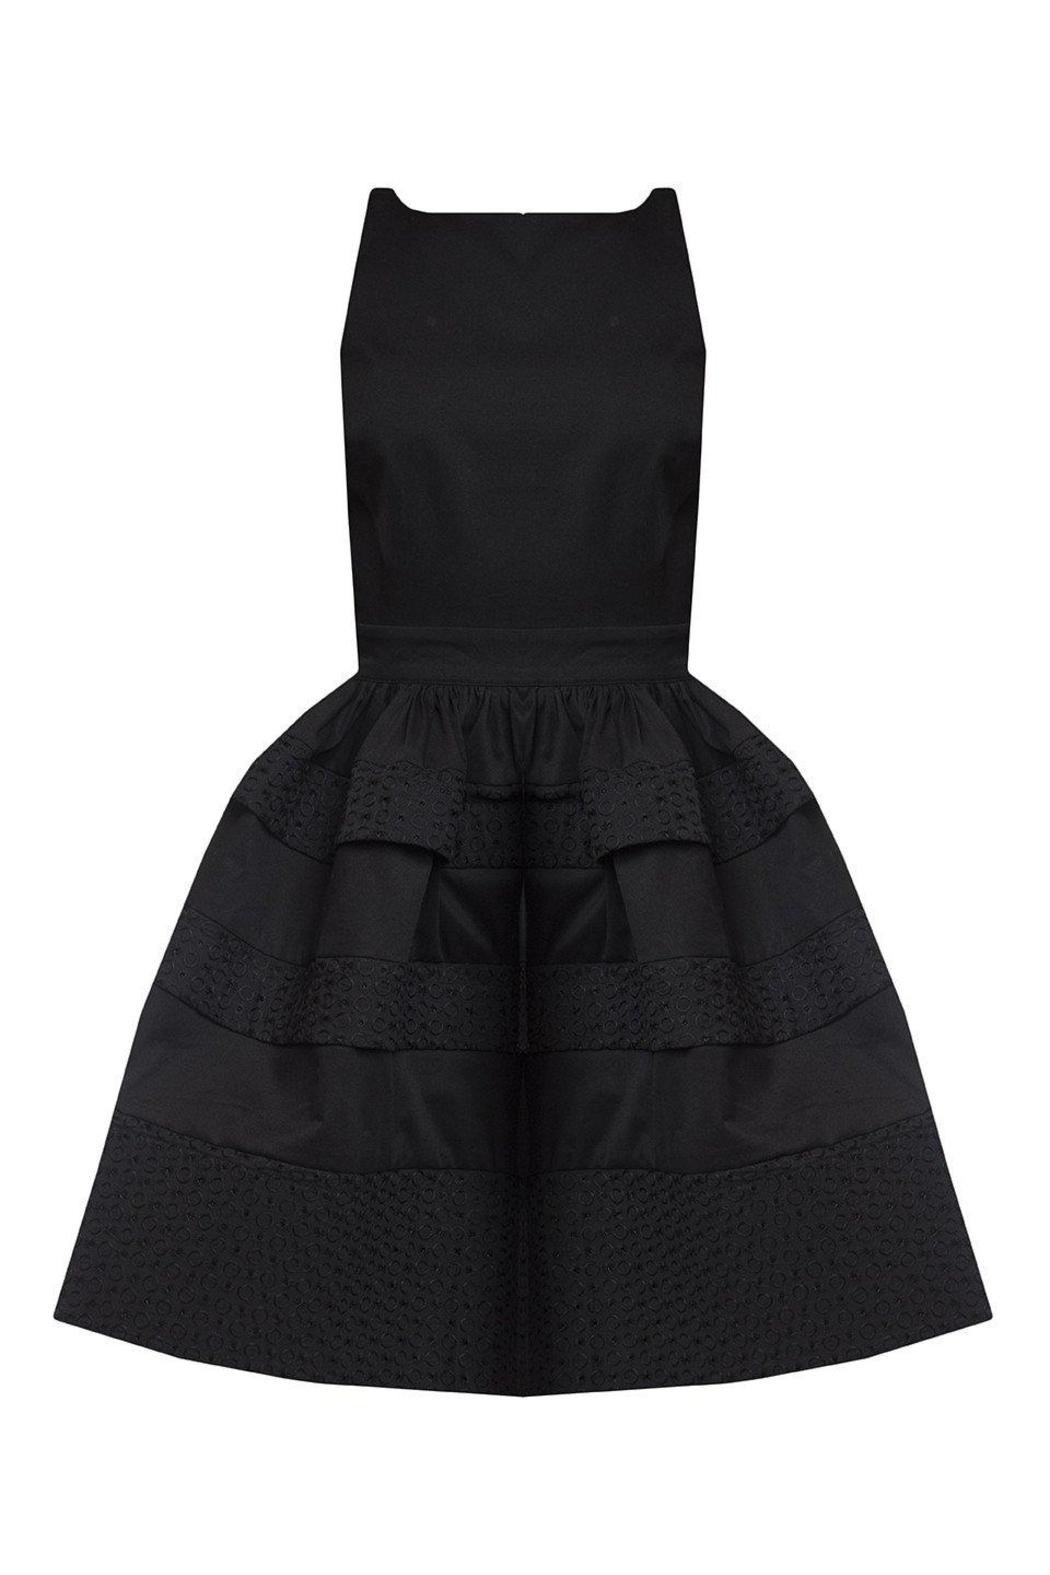 Greta Constantine Backless Bubble Dress - Front Full Image